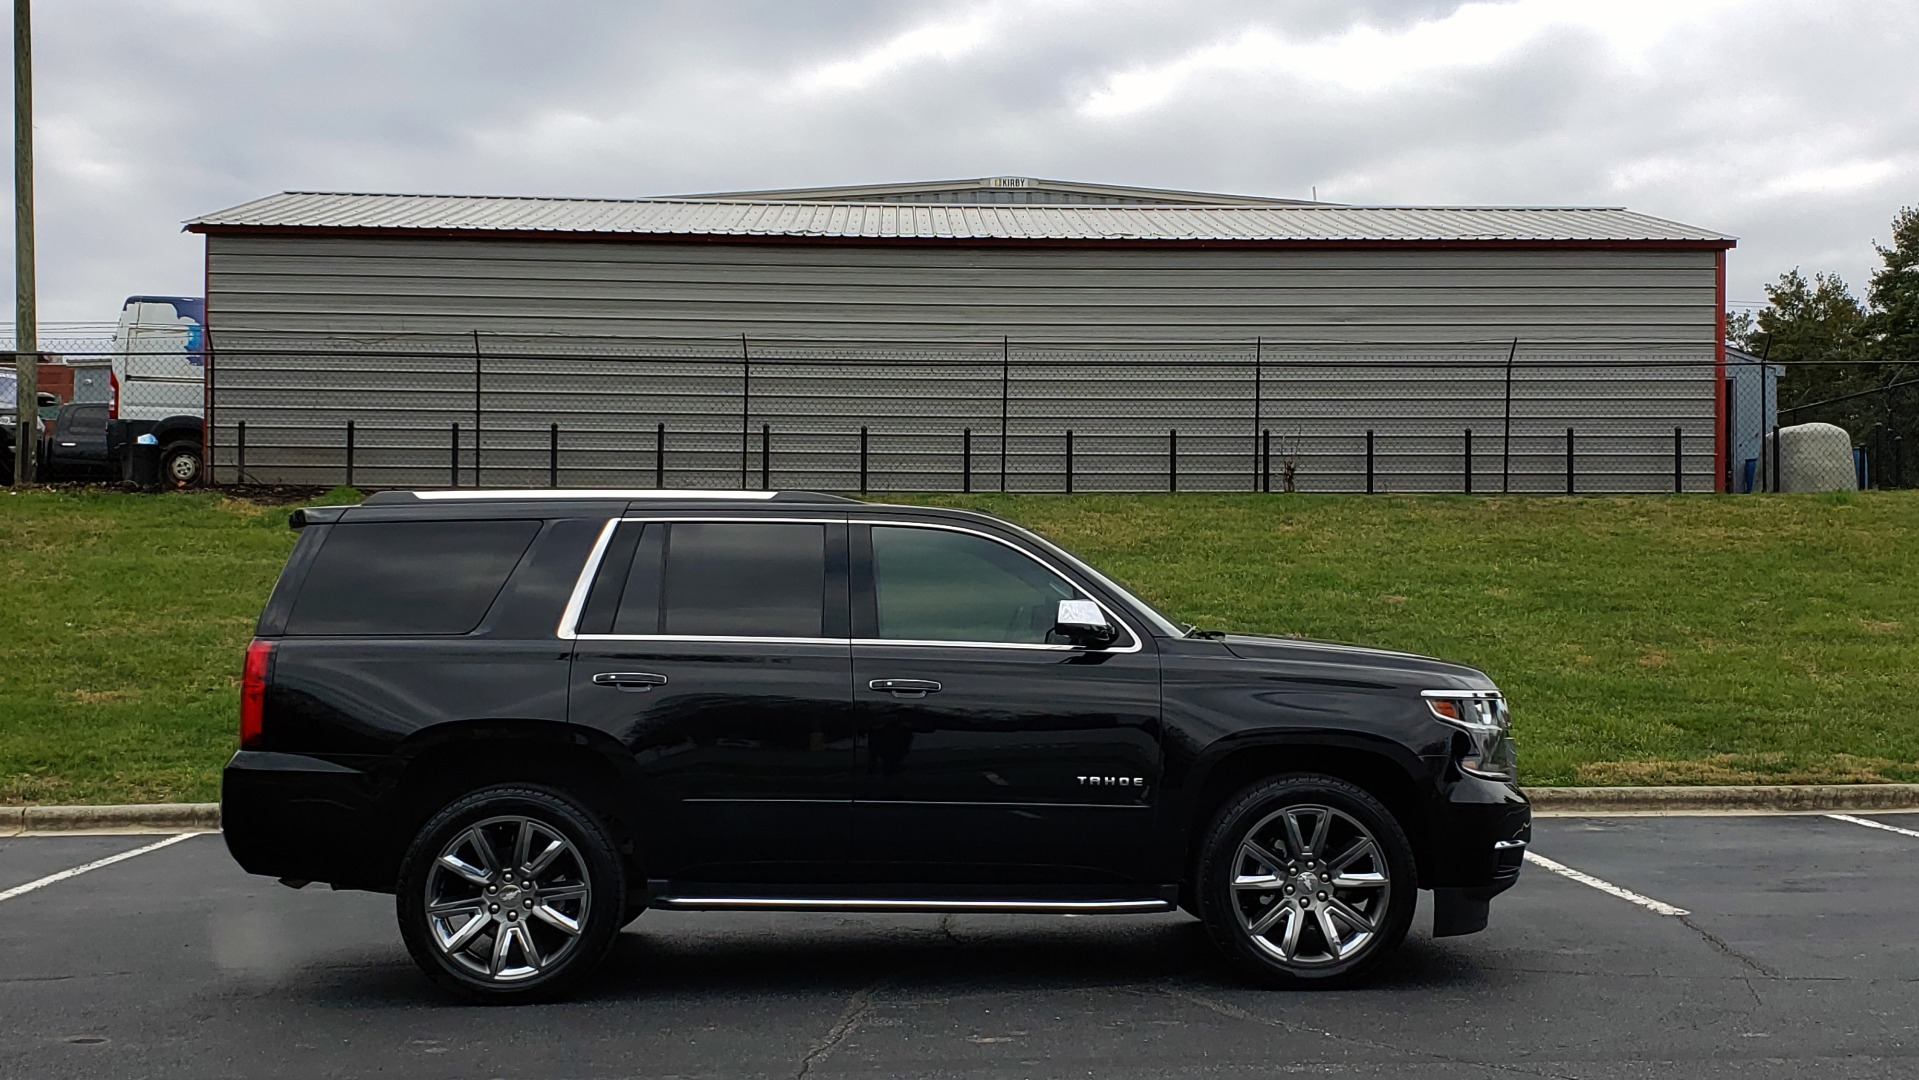 Used 2017 Chevrolet TAHOE PREMIER 4WD / NAV / SNRF / ENTERT / REARVIEW / 3-ROW for sale Sold at Formula Imports in Charlotte NC 28227 5